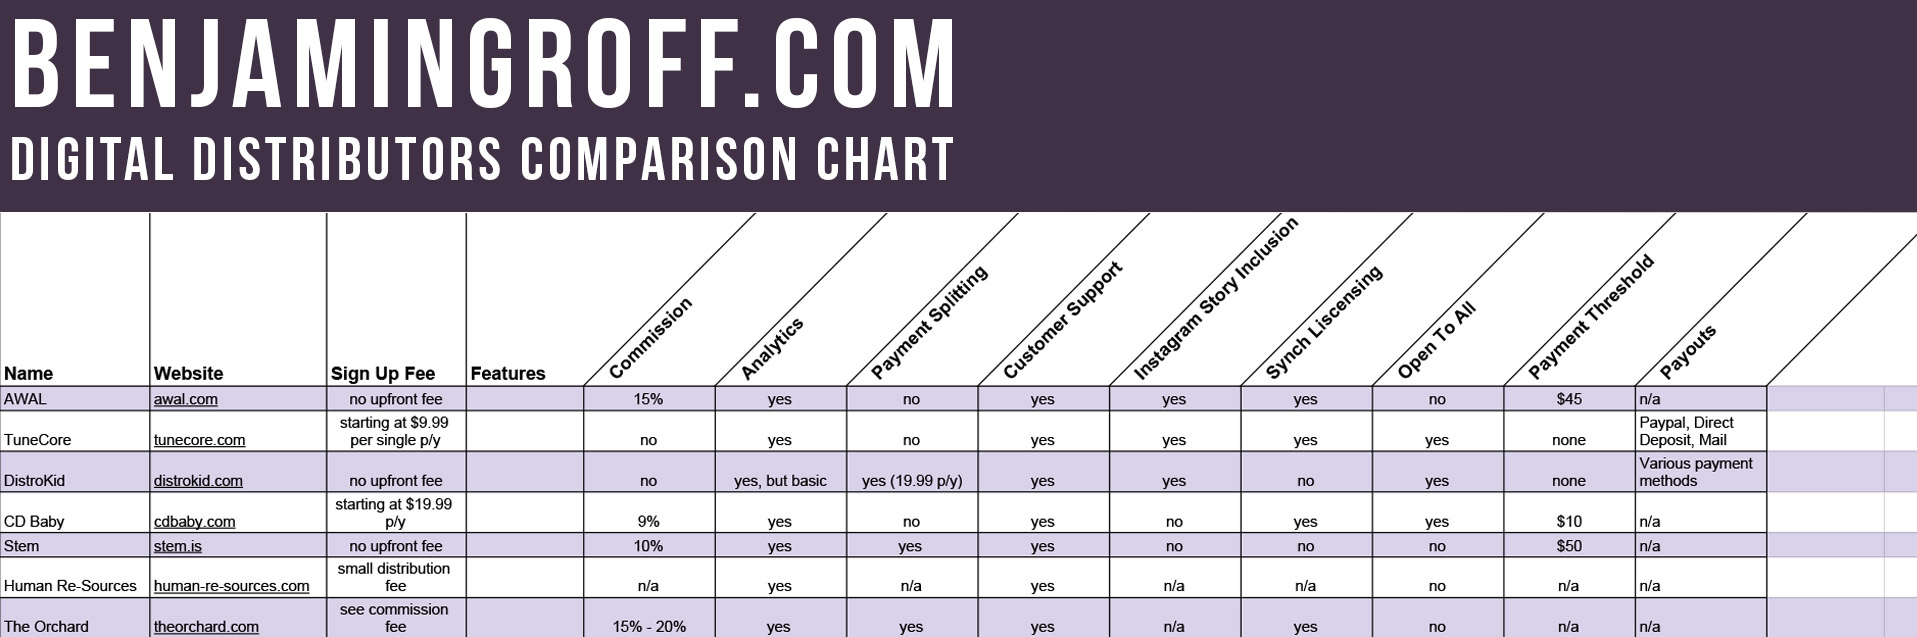 BenjaminGroff.com Digital Distribution Comparison Chart